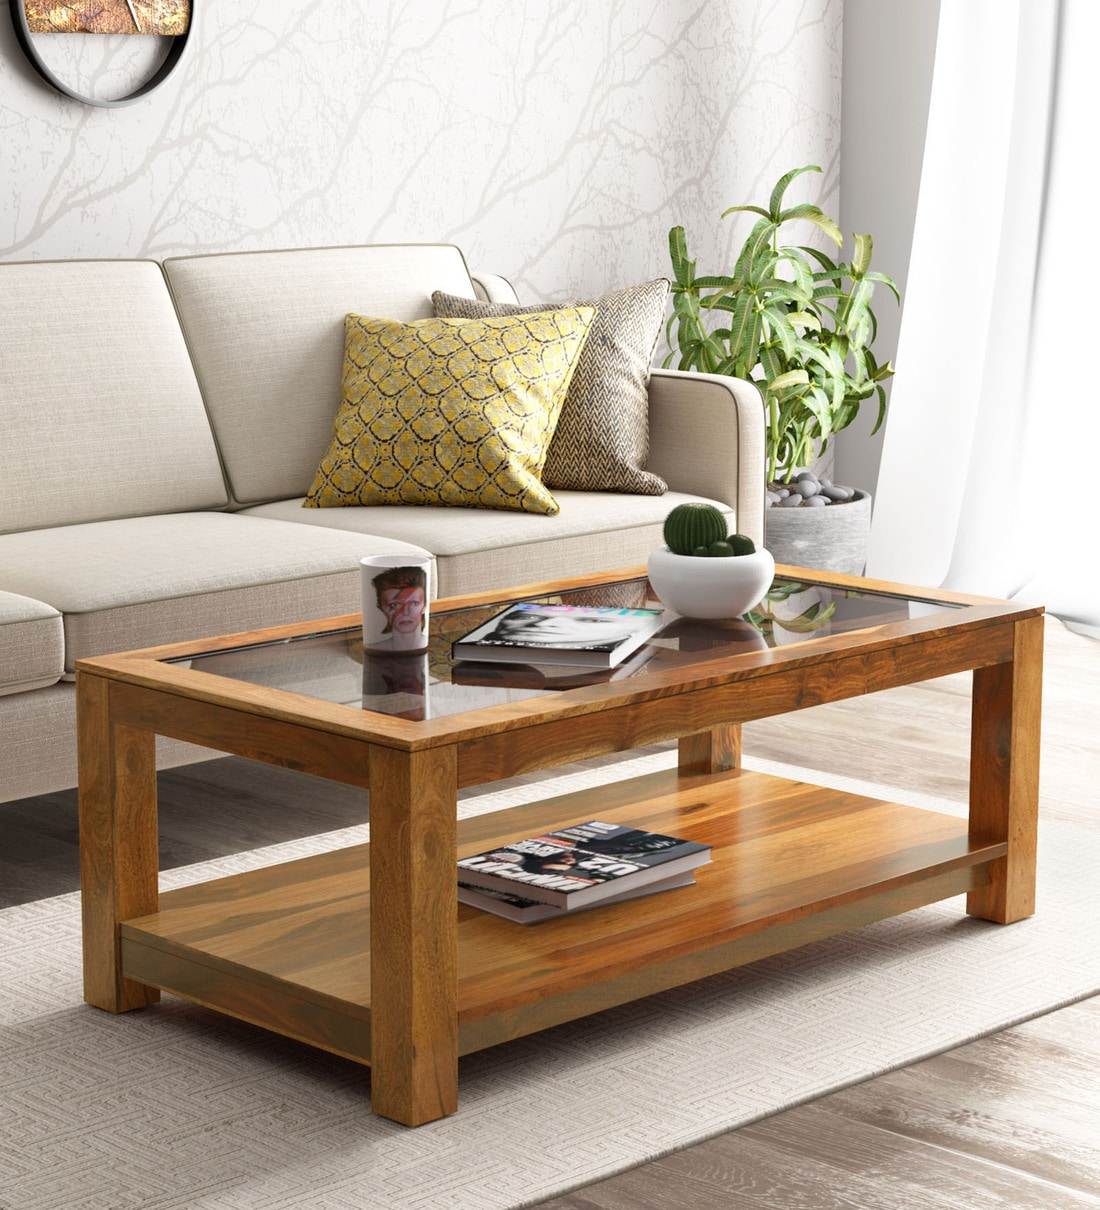 Picture of: Buy Mckaine Solid Wood Coffee Table With Glass Top In Rustic Teak Finish By Woodsworth Online Contemporary Rectangular Coffee Tables Tables Furniture Pepperfry Product